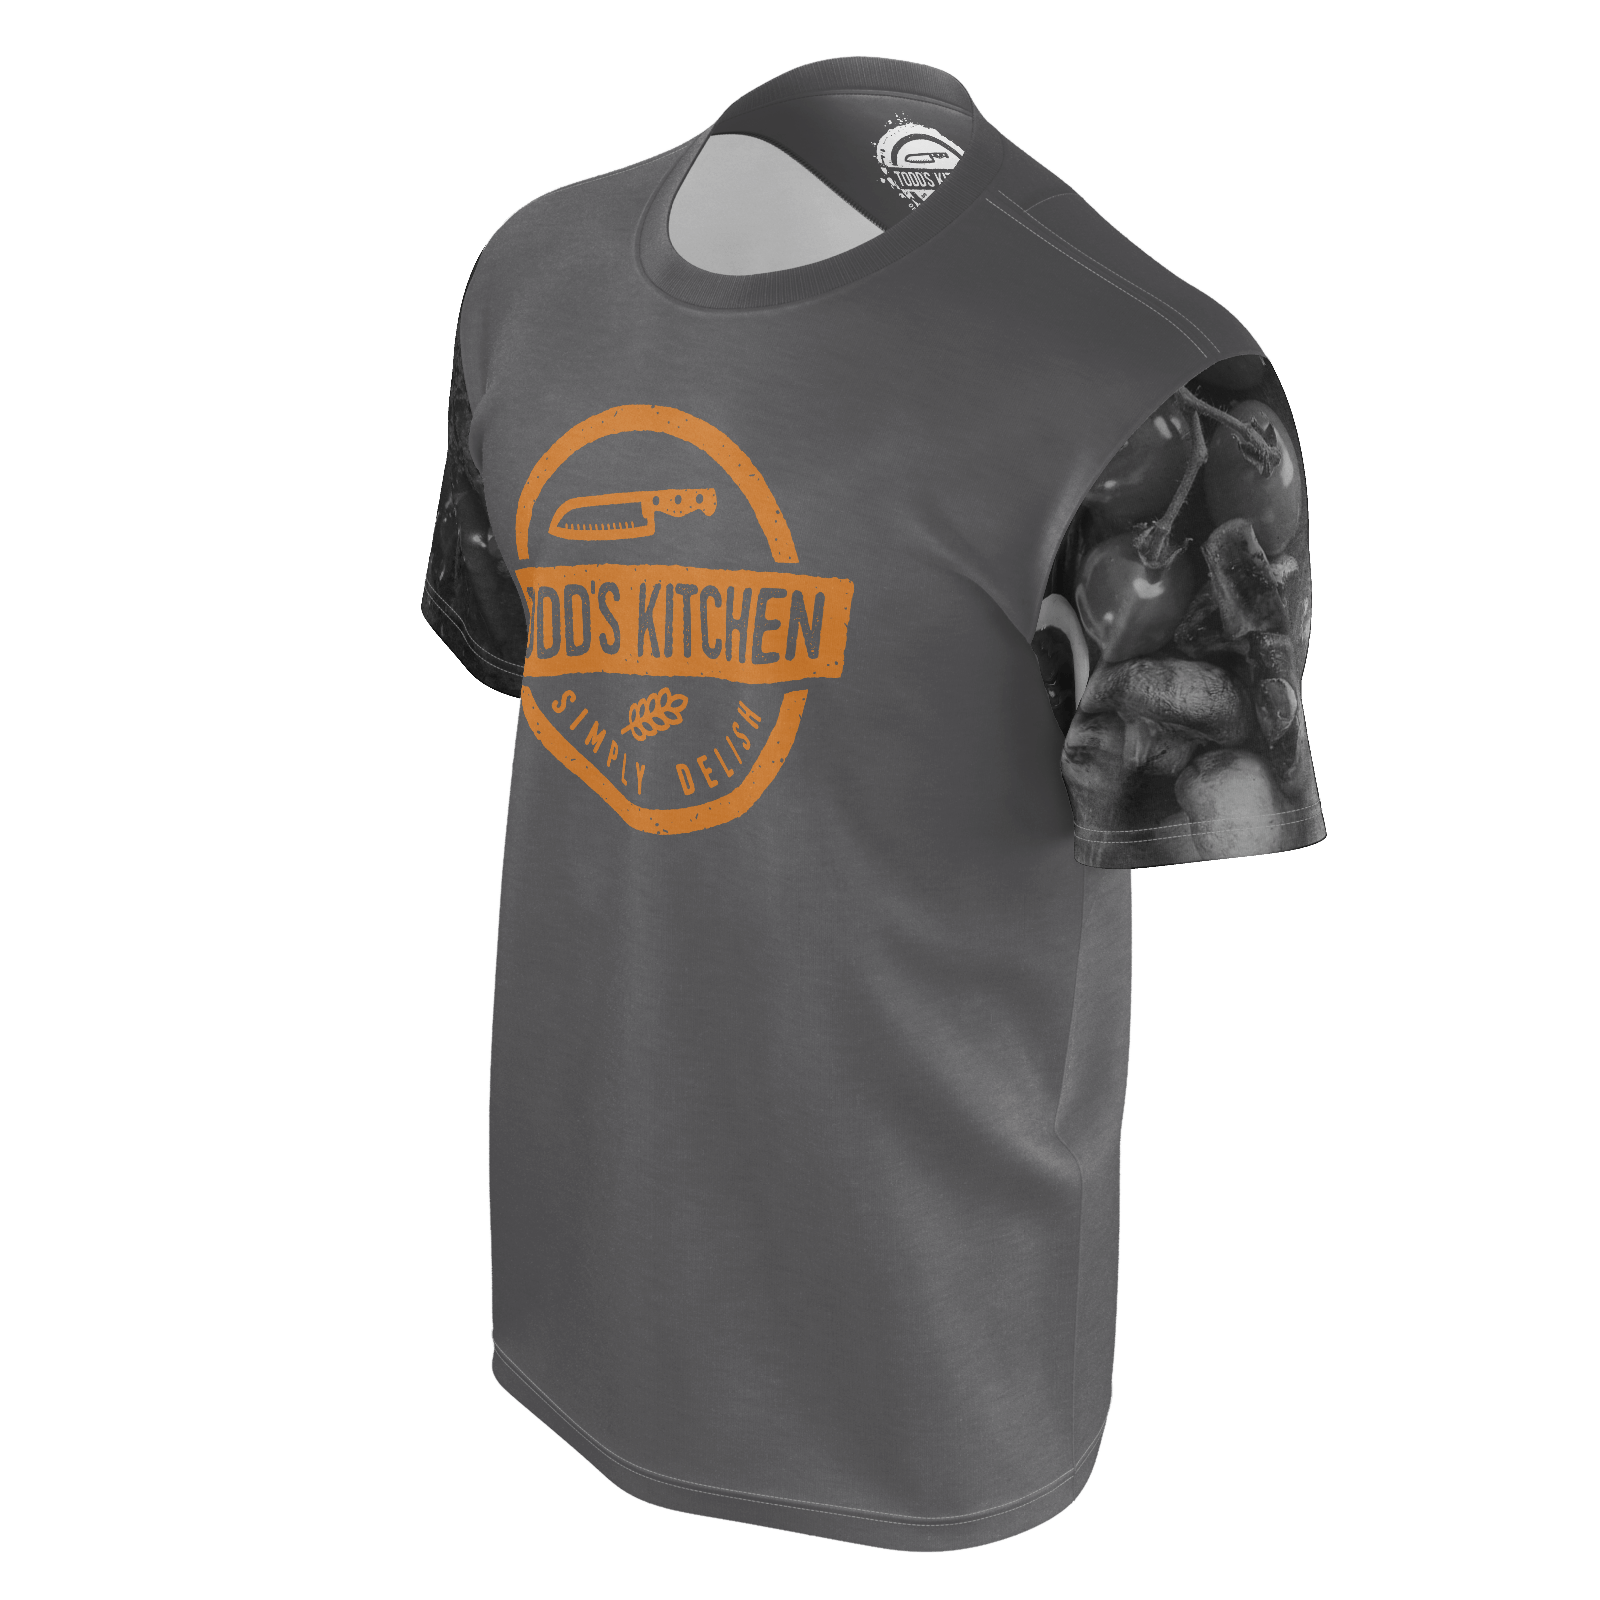 todd s kitchen gray culinary sleeves t shirt bbtv shop